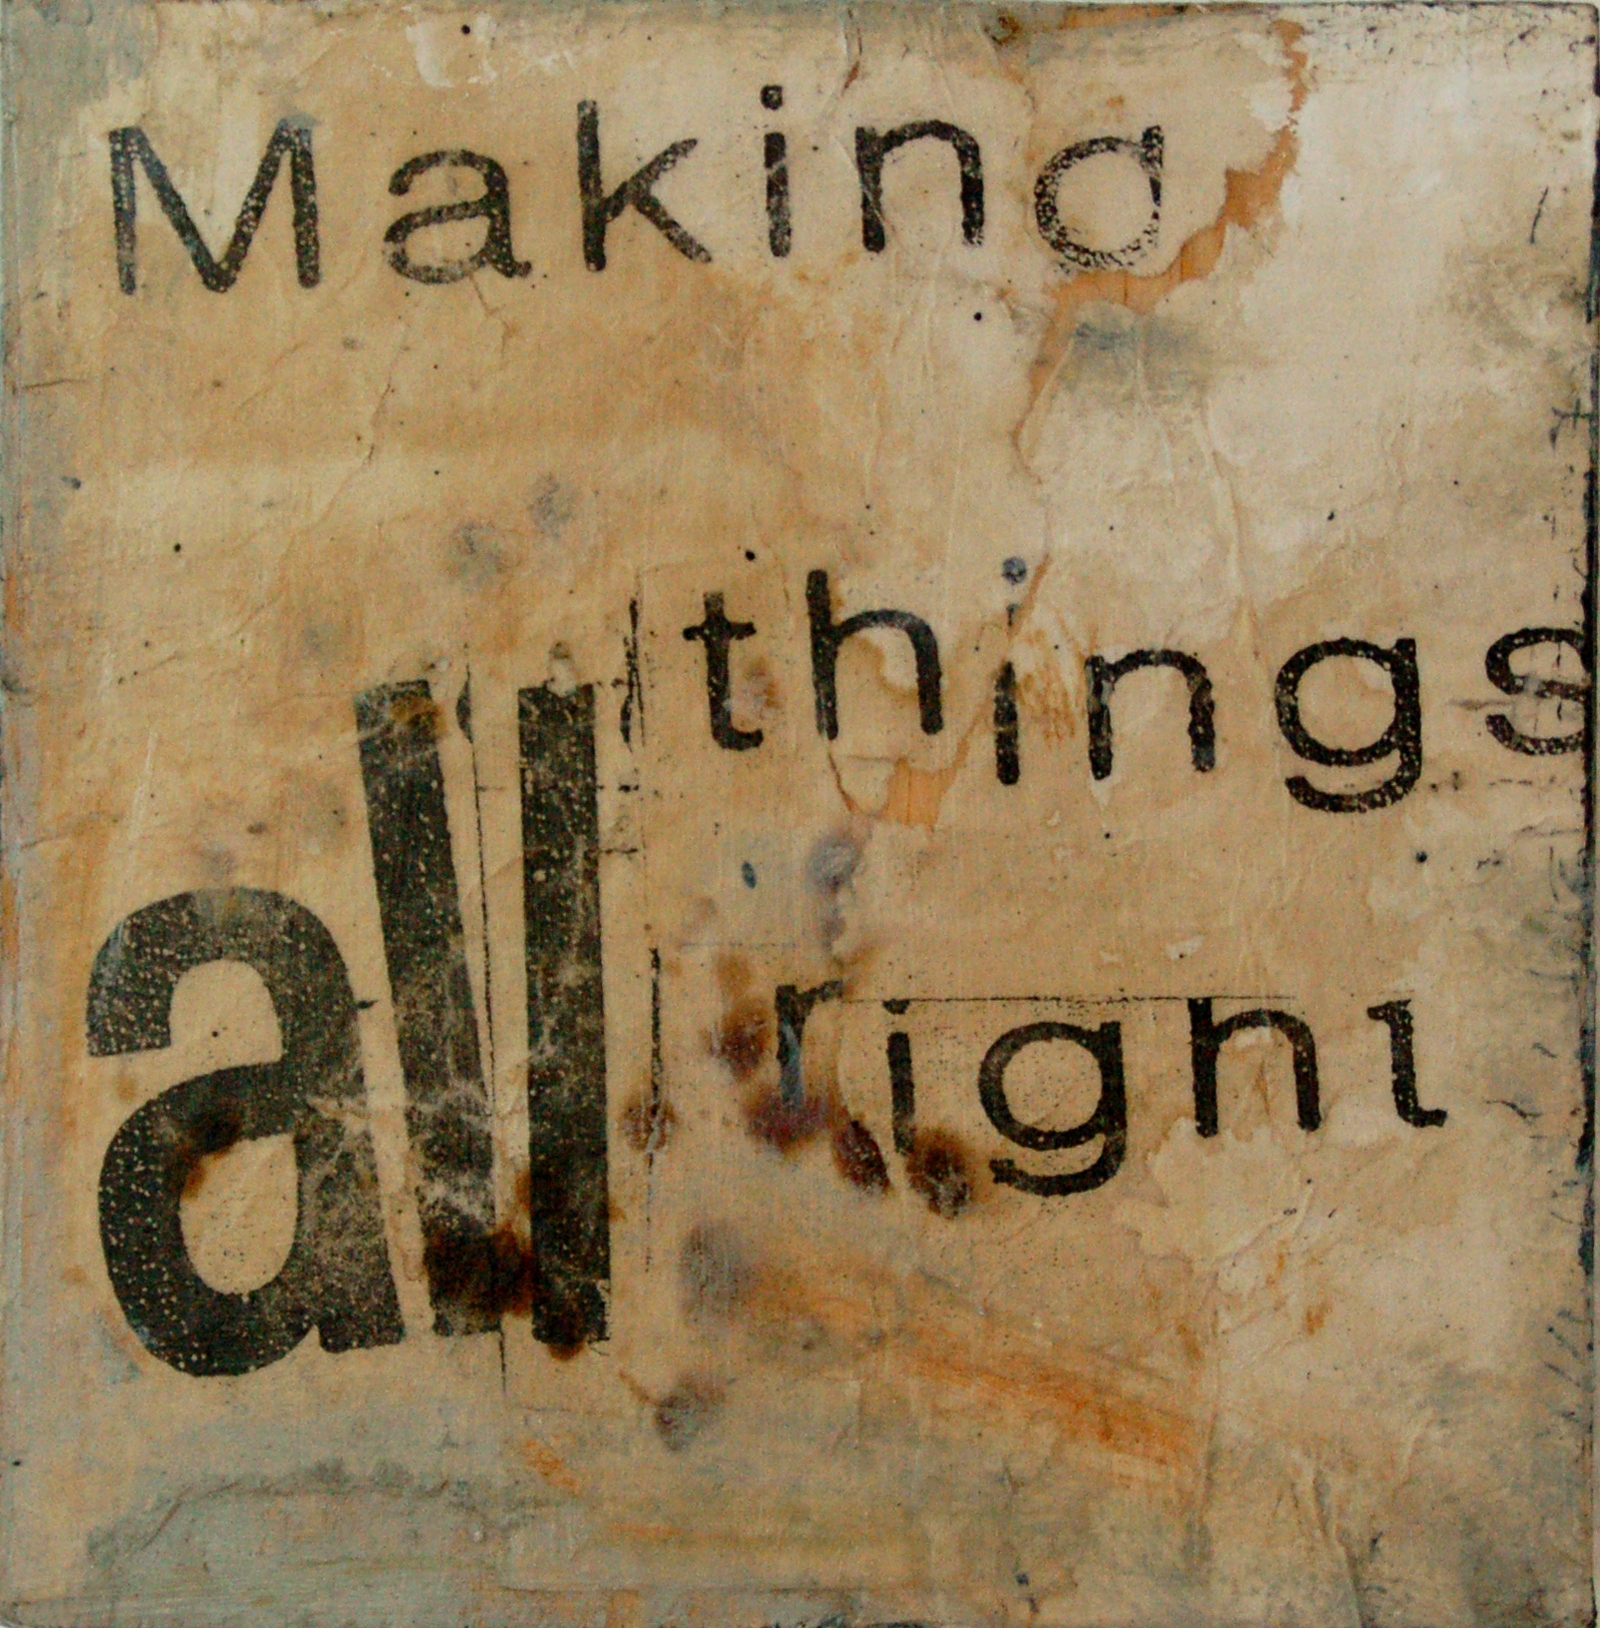 MAKING ALL THINGS RIGHT